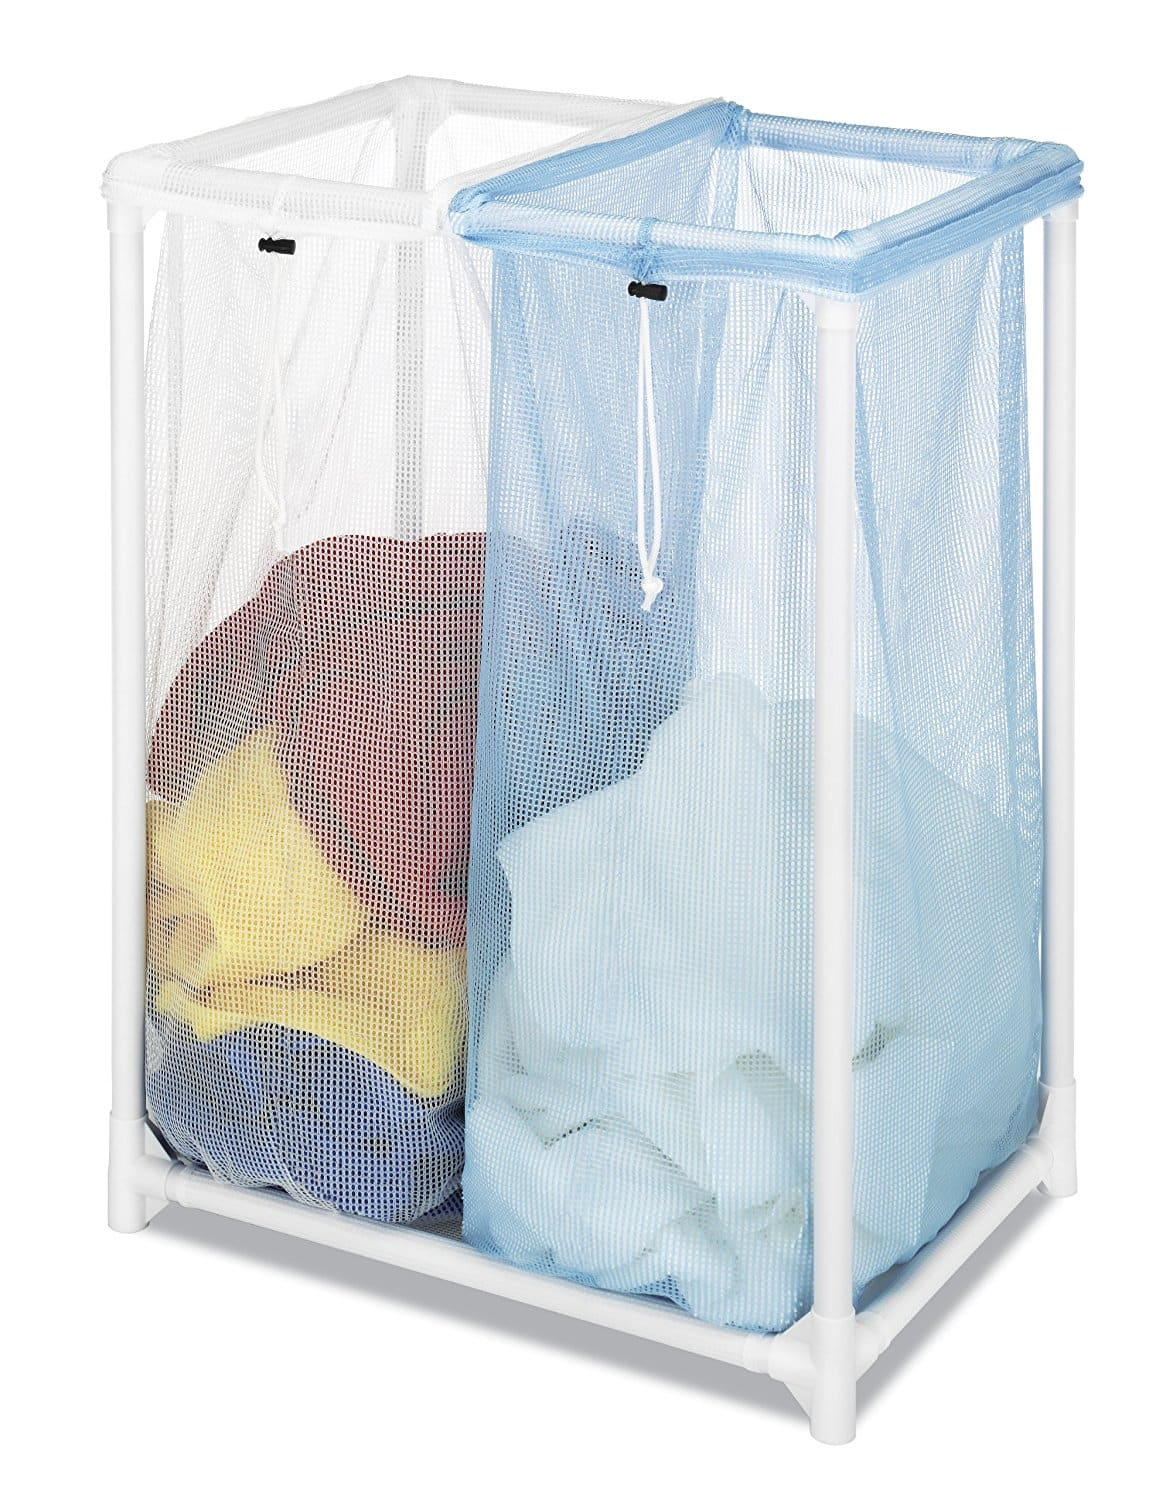 Whitmor Double Laundry Sorter $8.50 w/ Walmart pickup or Prime Shipping @ Amazon